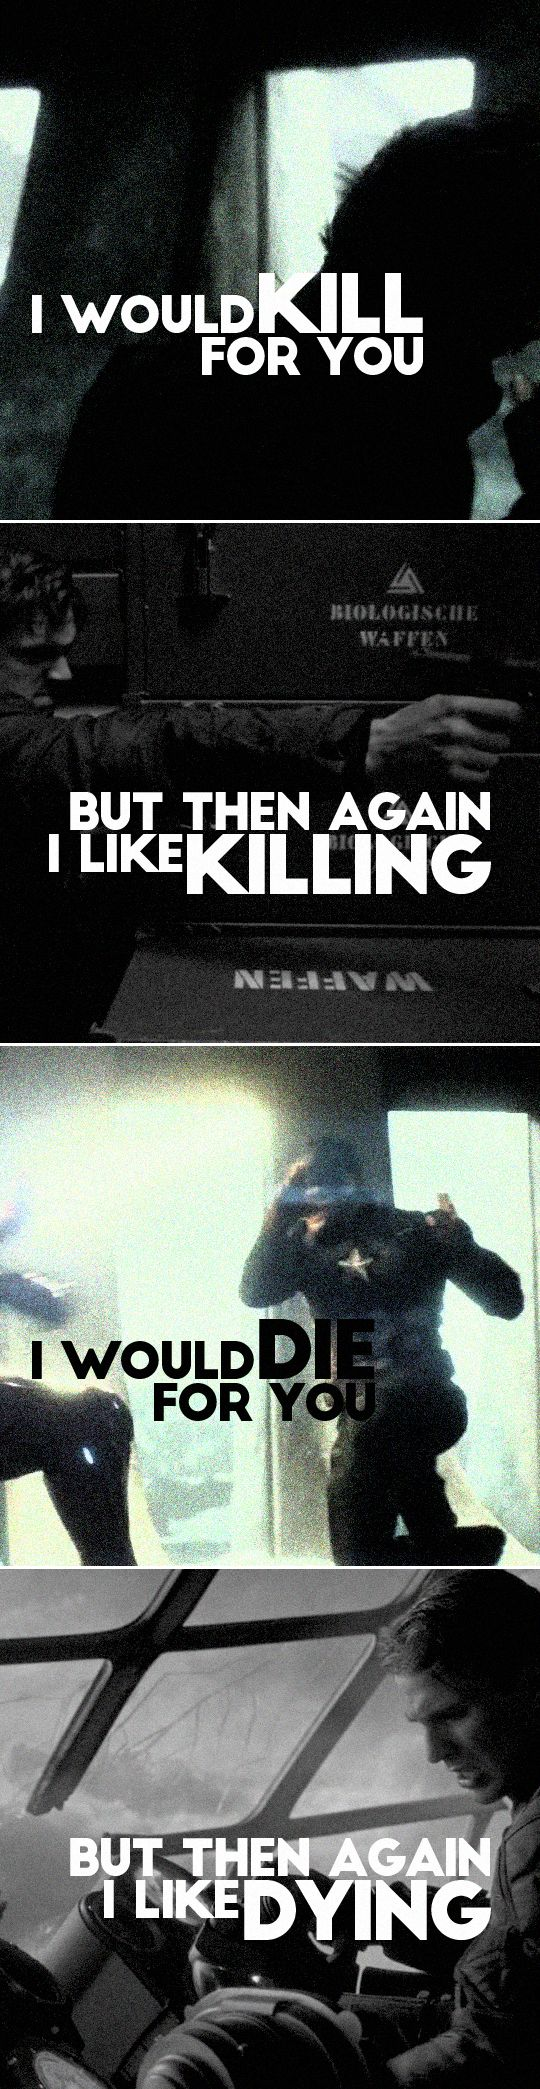 Captain America + The Winter Soldier: i would kill for you but then again i like killing i would die for you but then again i like dying// go break my heart whydoncha?